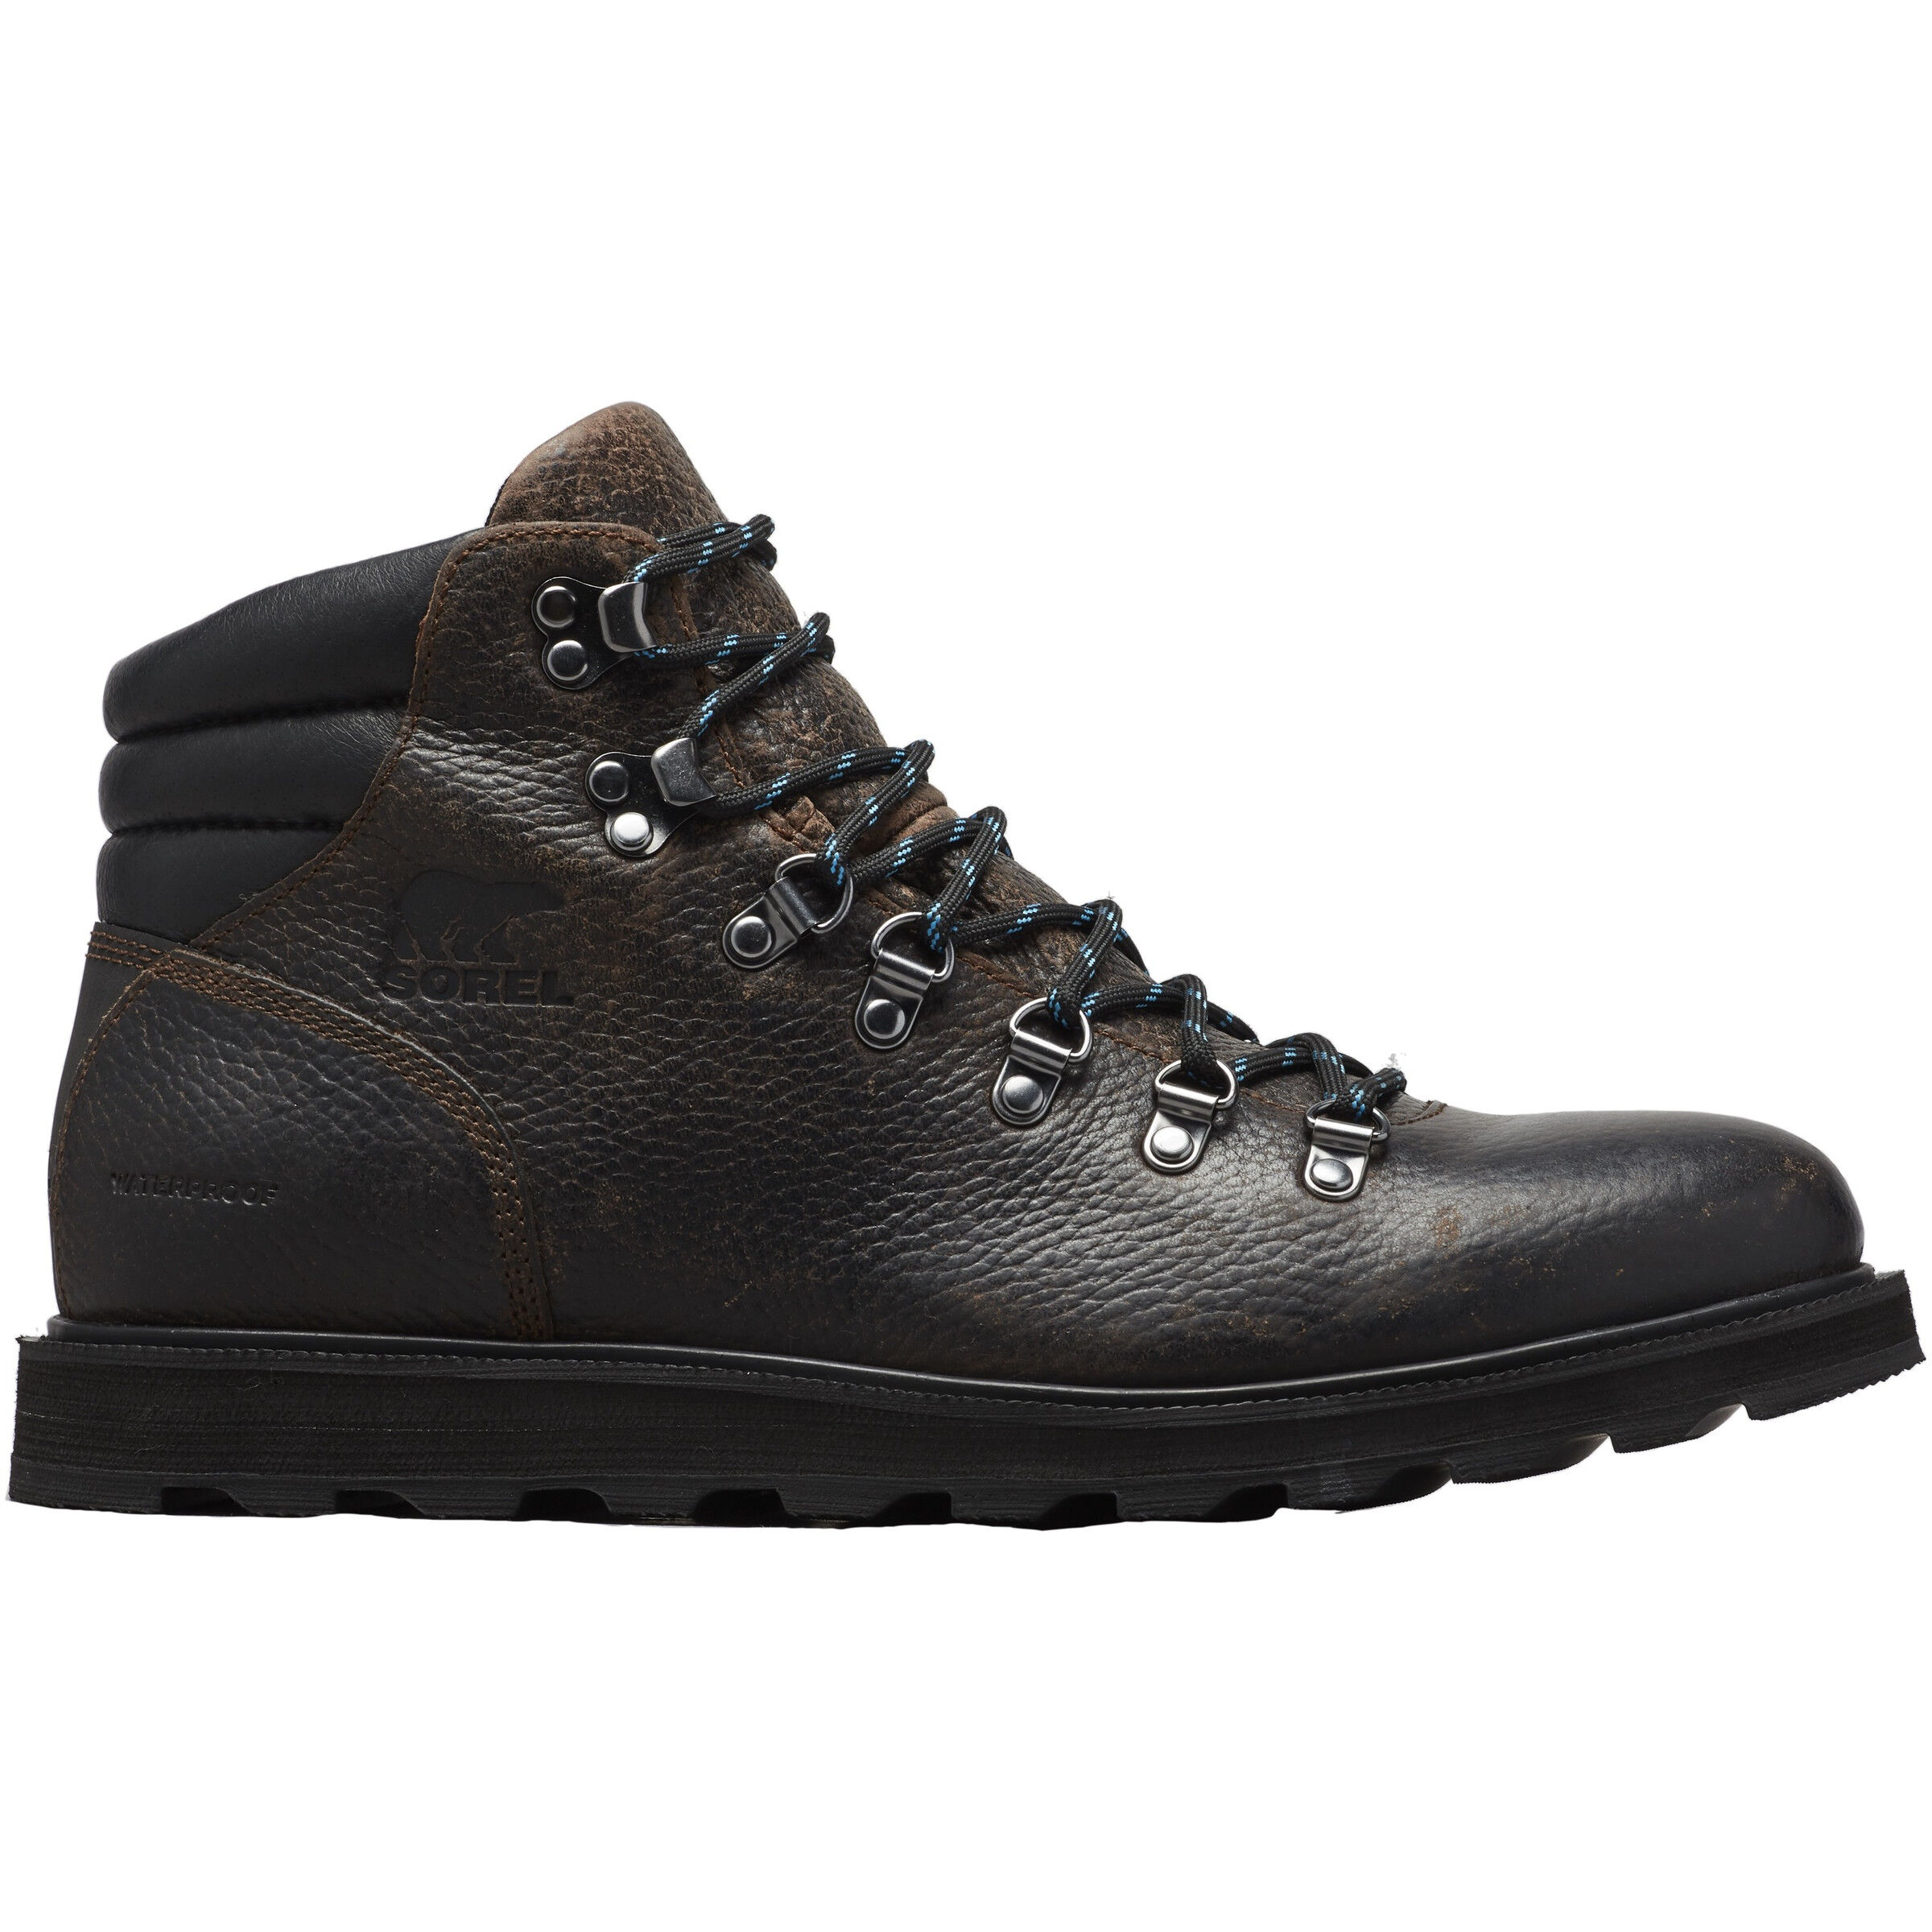 Sorel Madson Hiker Waterproof Shoes Herr tobacco